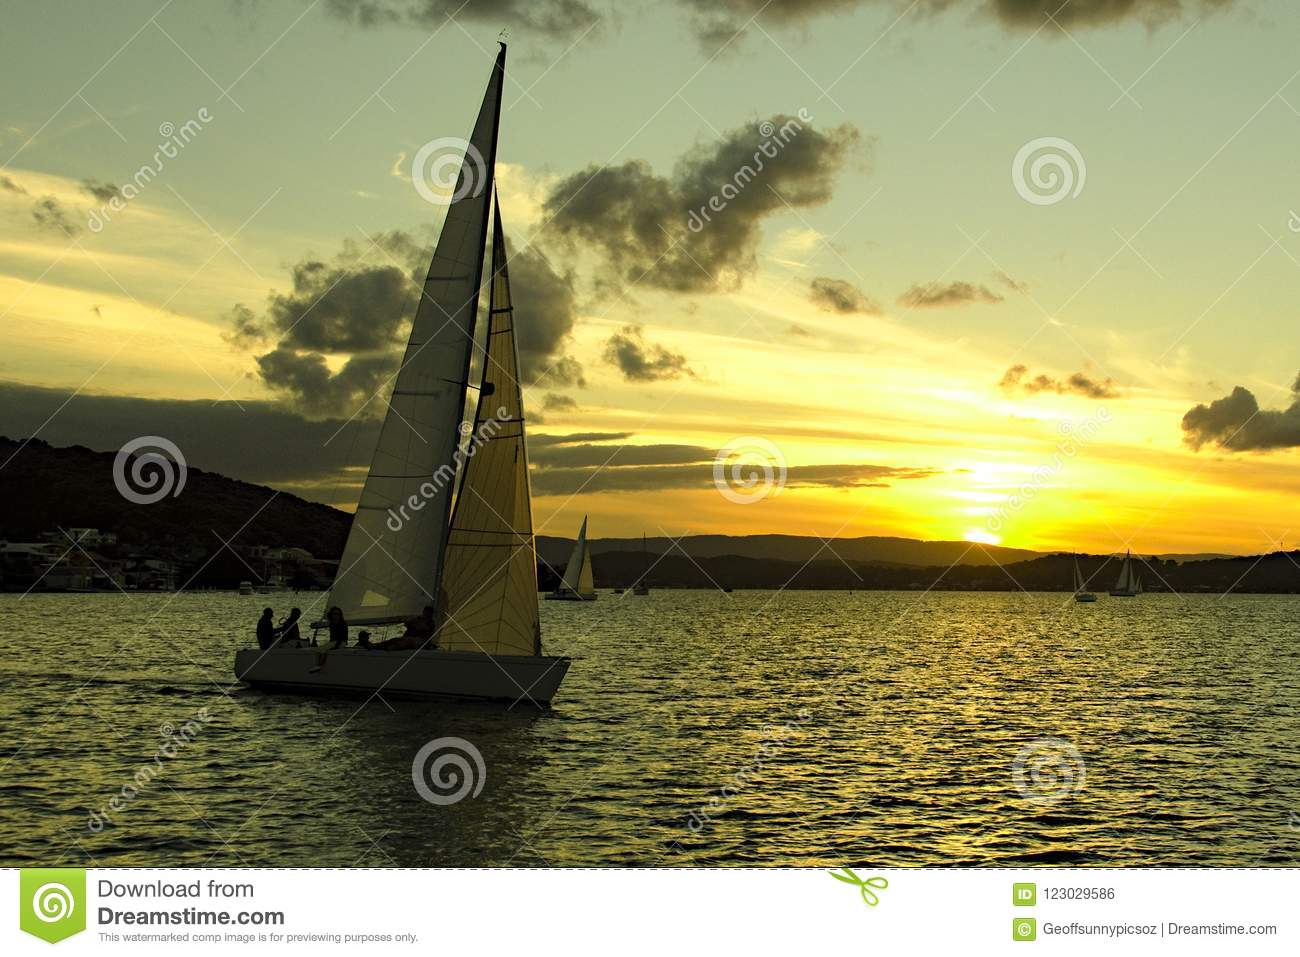 Yellow coloured stratocumulus cloud, sunset seascape over a sail